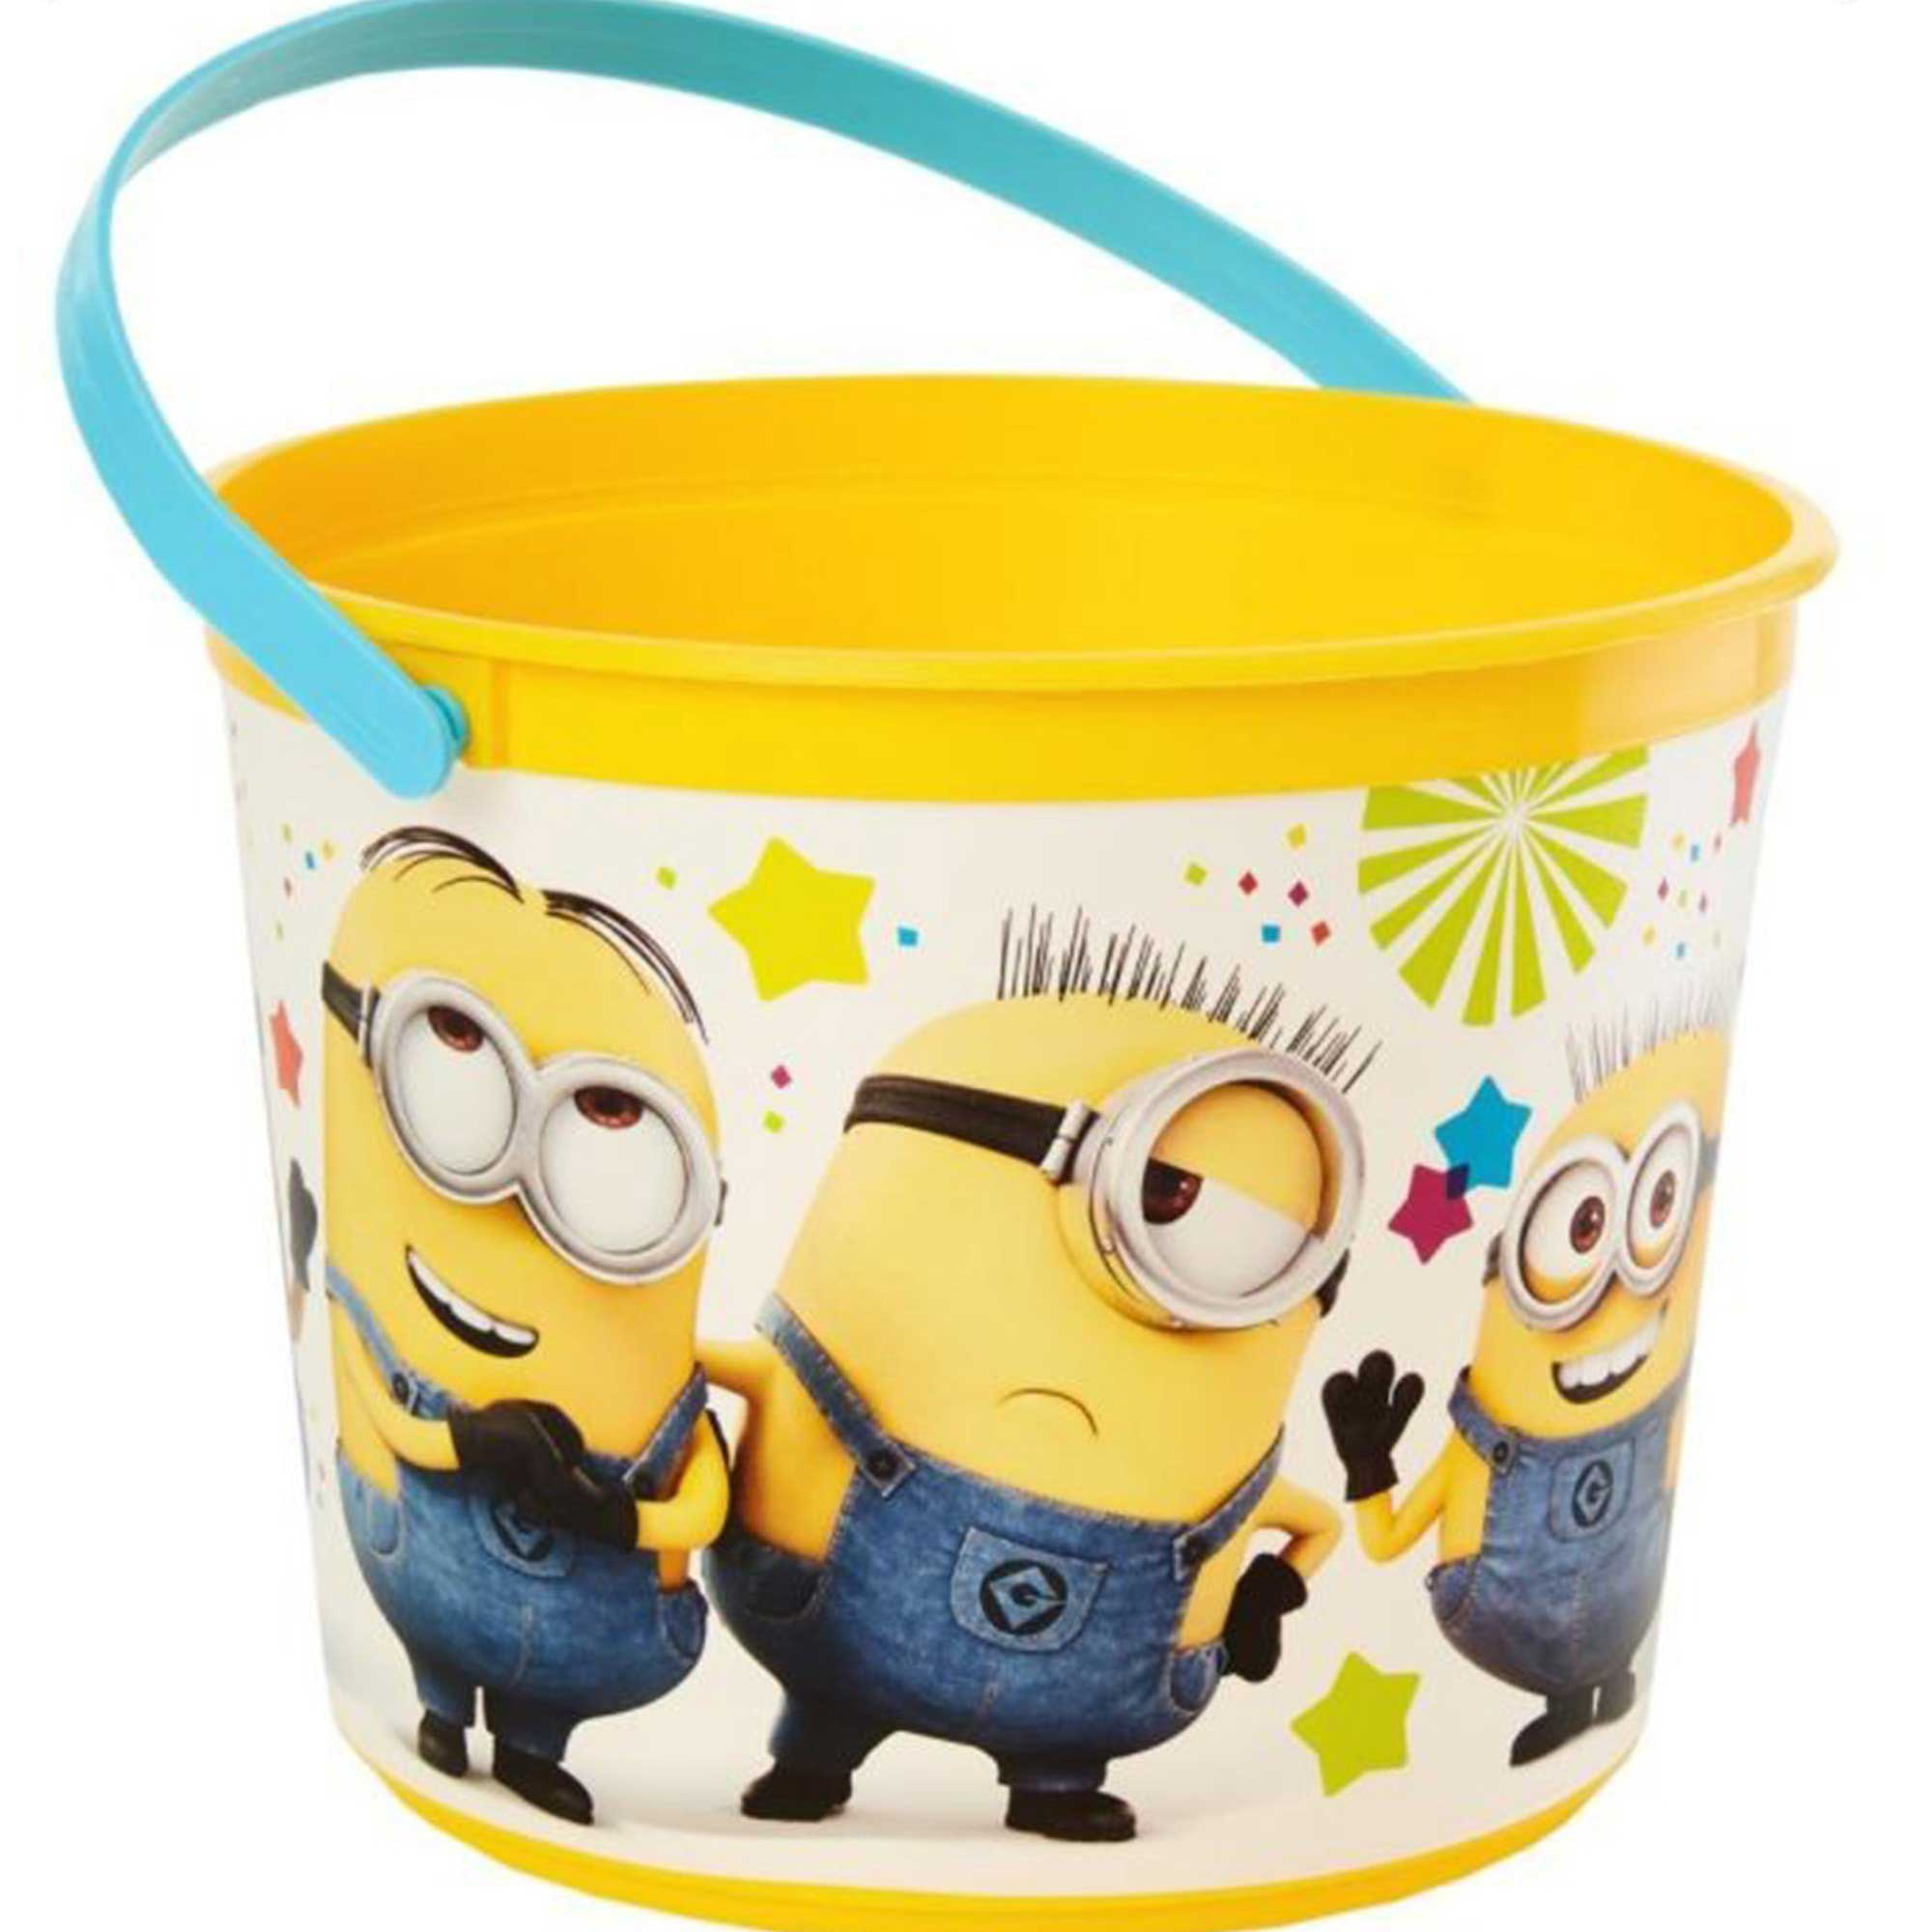 Despicable Me Plastic Favor Container